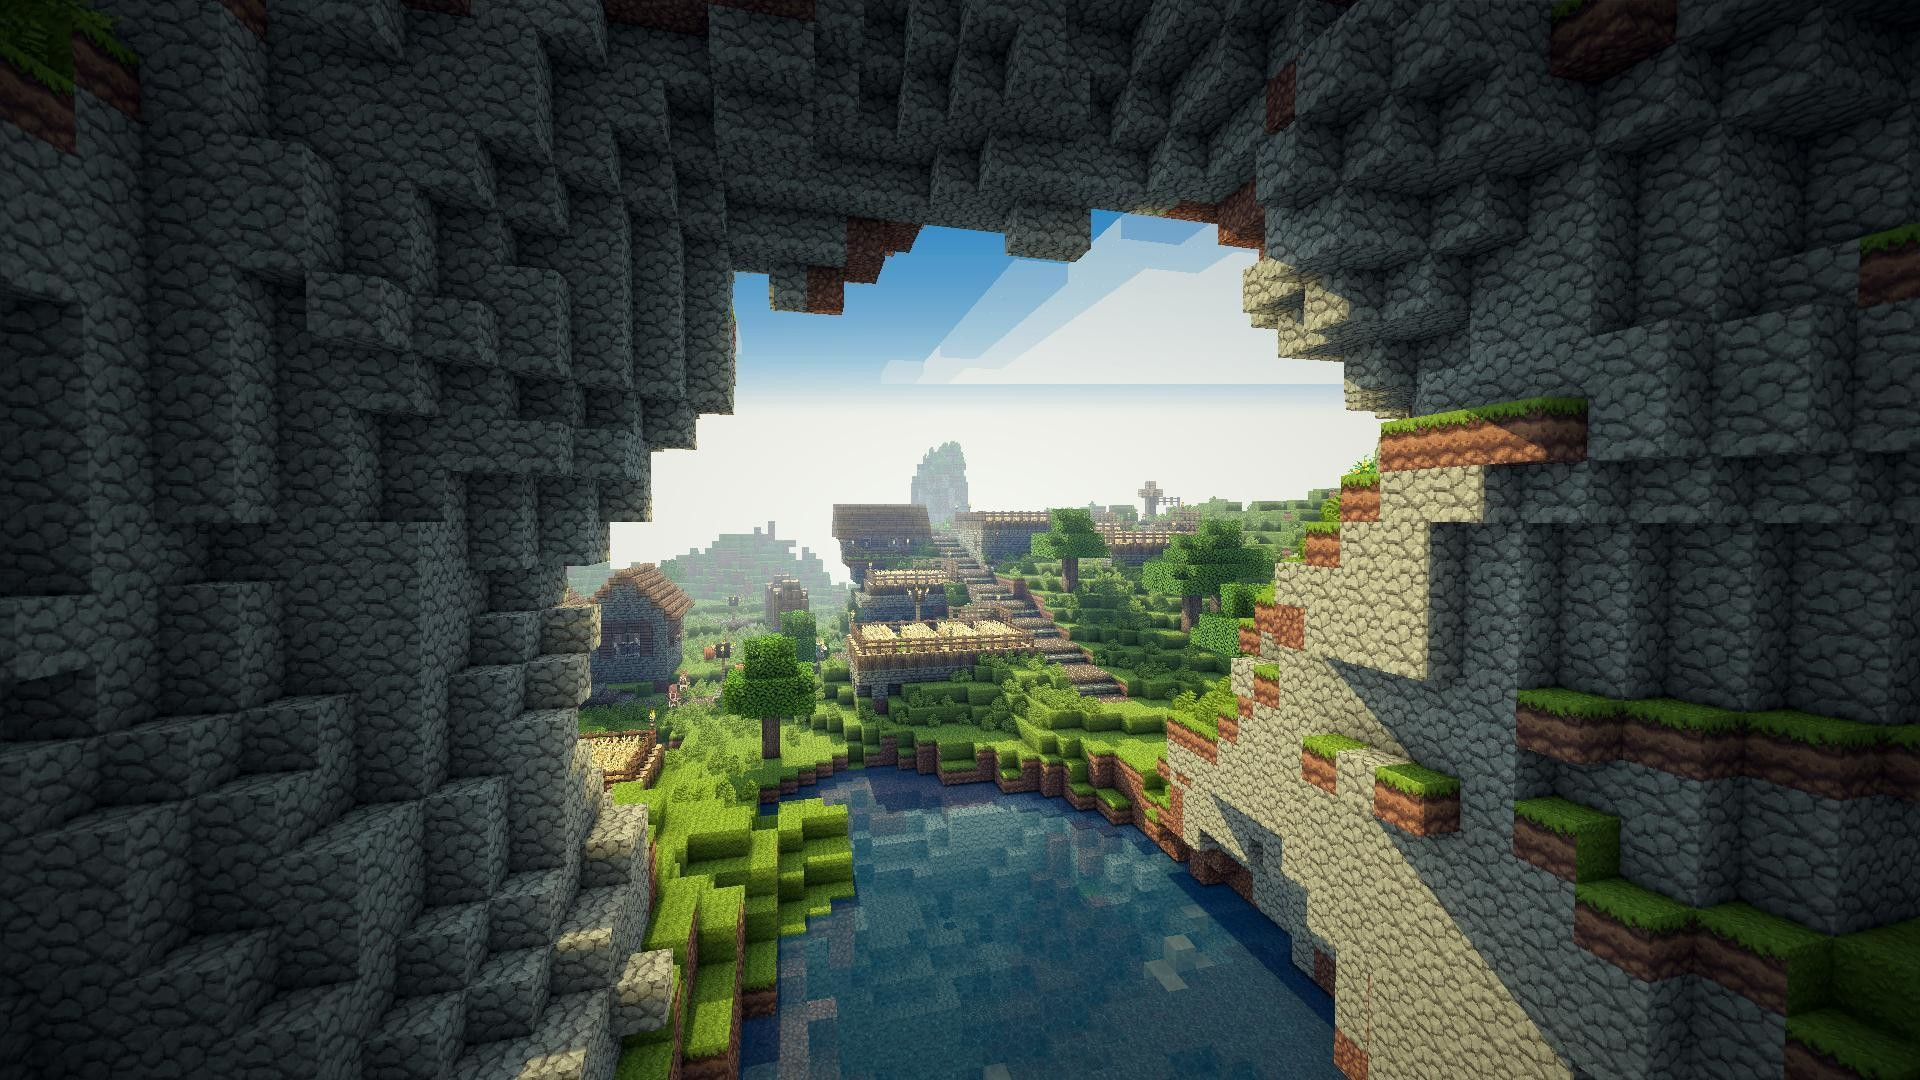 Hd Wallpapers Of Minecraft 78 Images